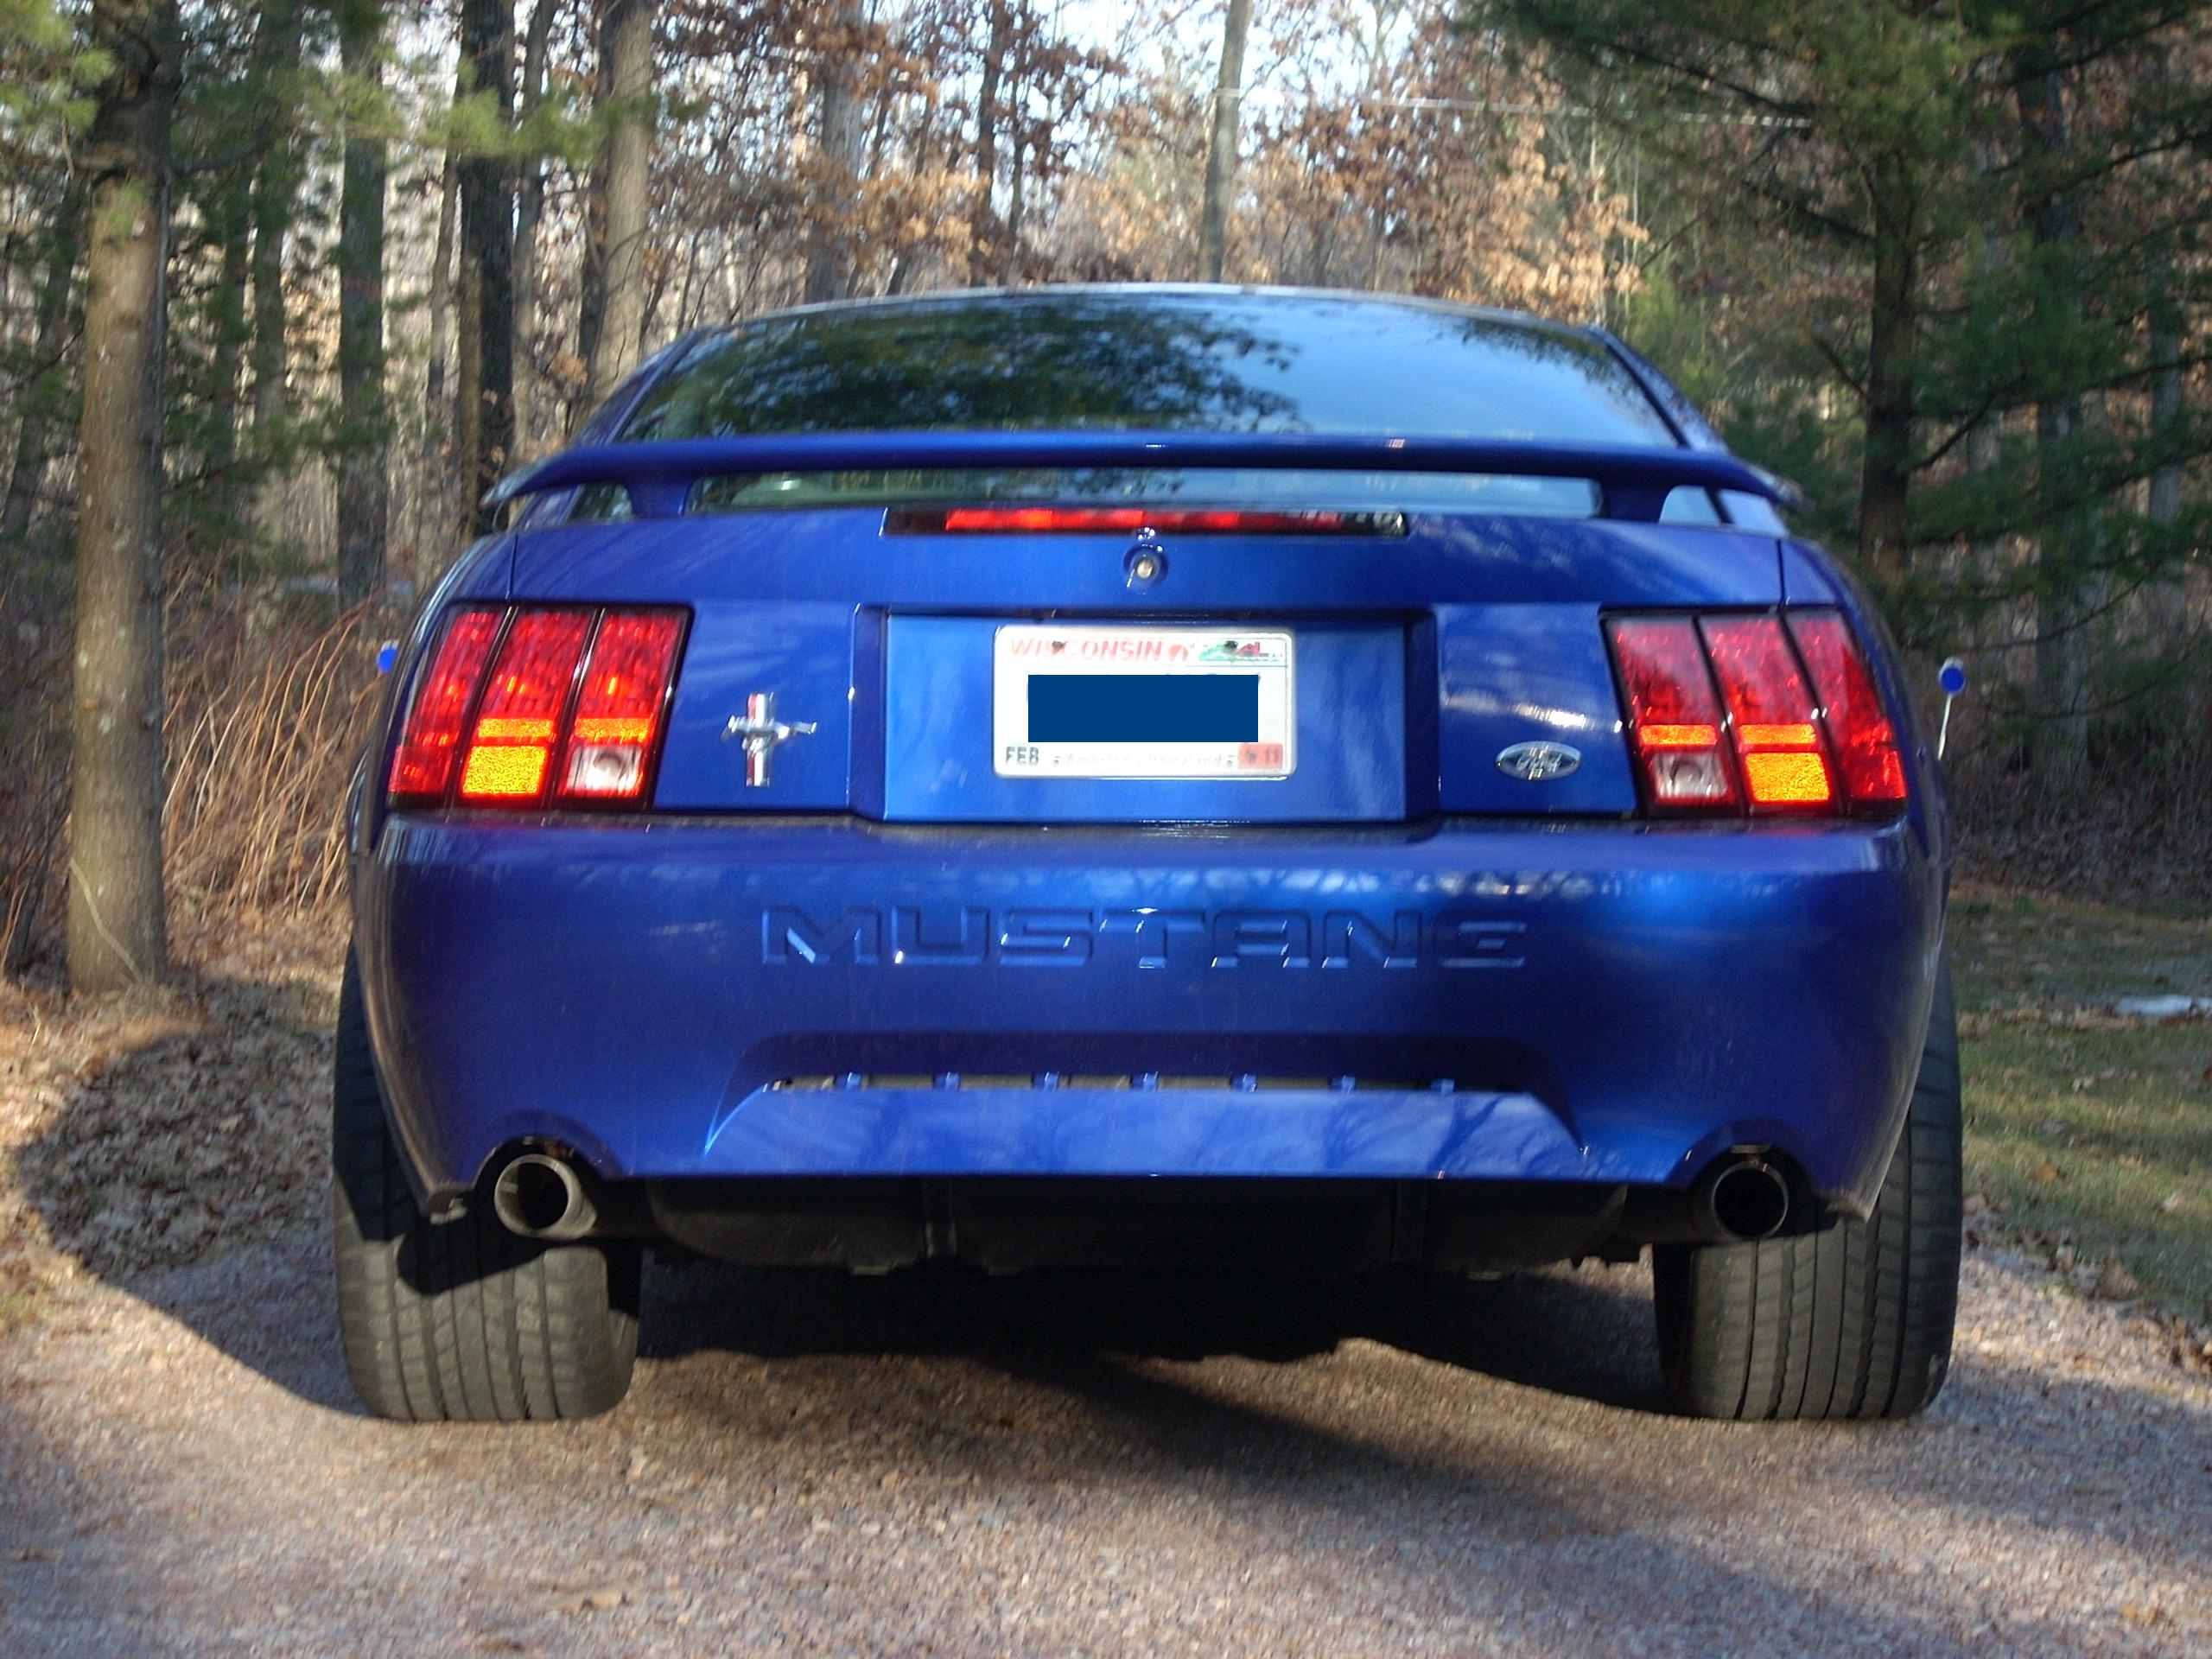 Click image for larger version  Name:Mustang Rear edit.JPG Views:1372 Size:632.3 KB ID:21544